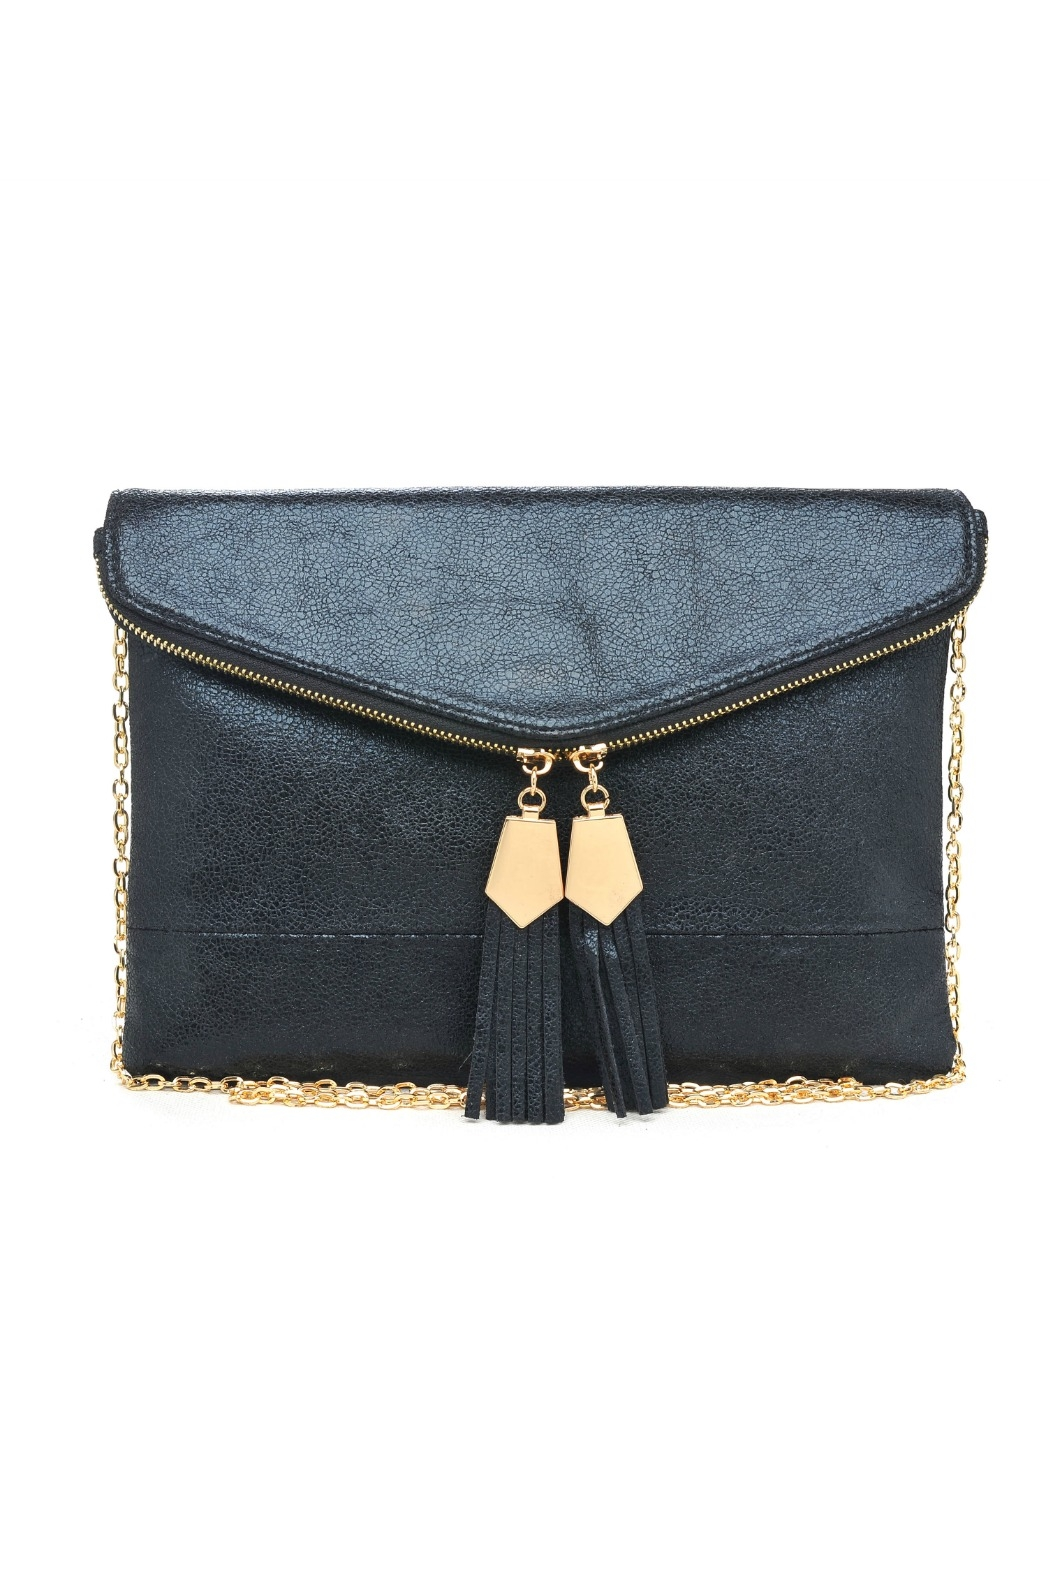 Urban Expressions Gold Detailed Tassel Clutch - Main Image